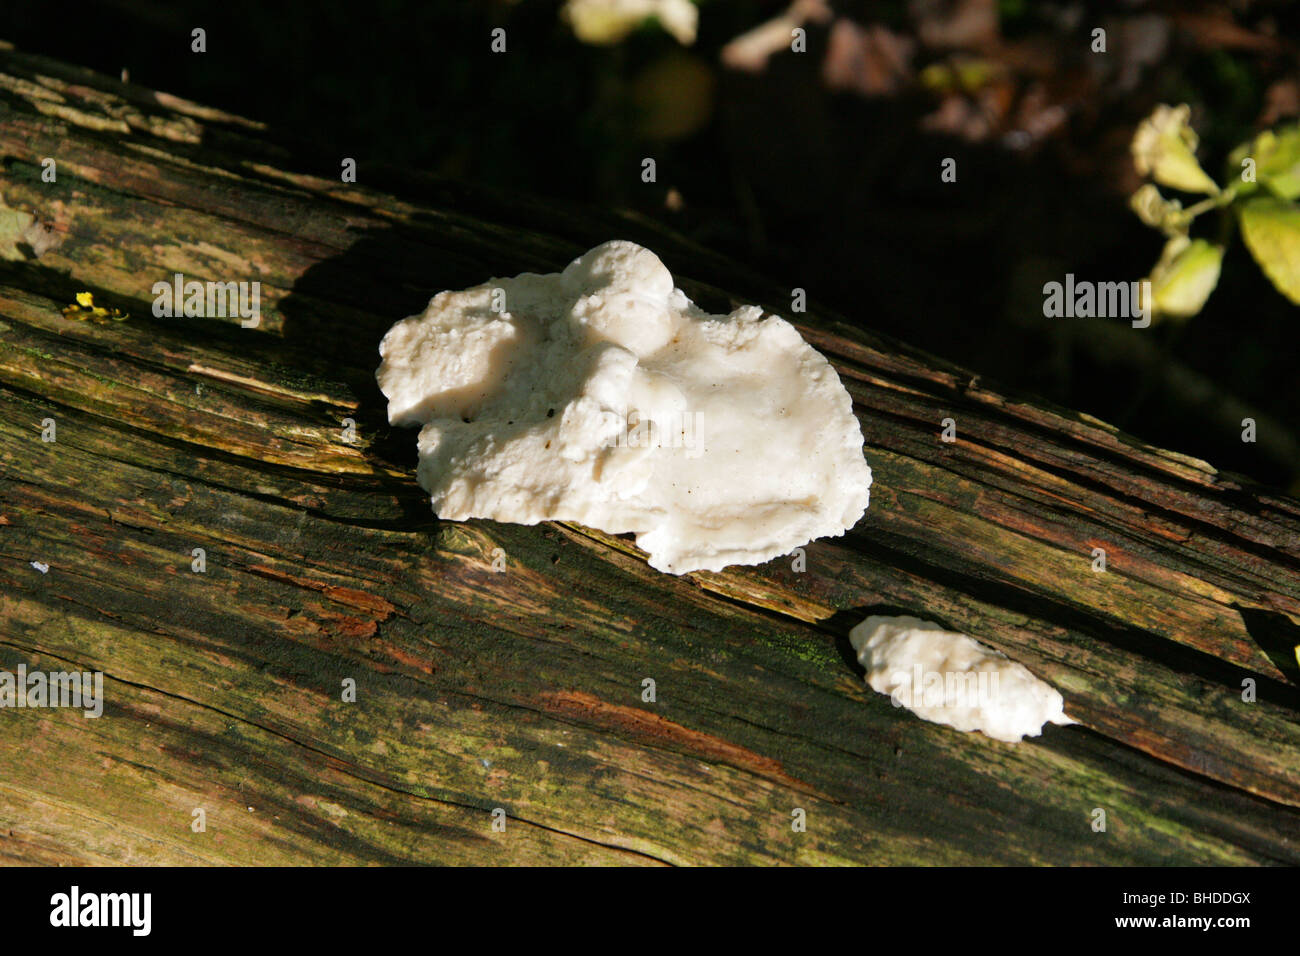 Hard White Fungal Growth on a Barkless Dead Beech Tree. - Stock Image